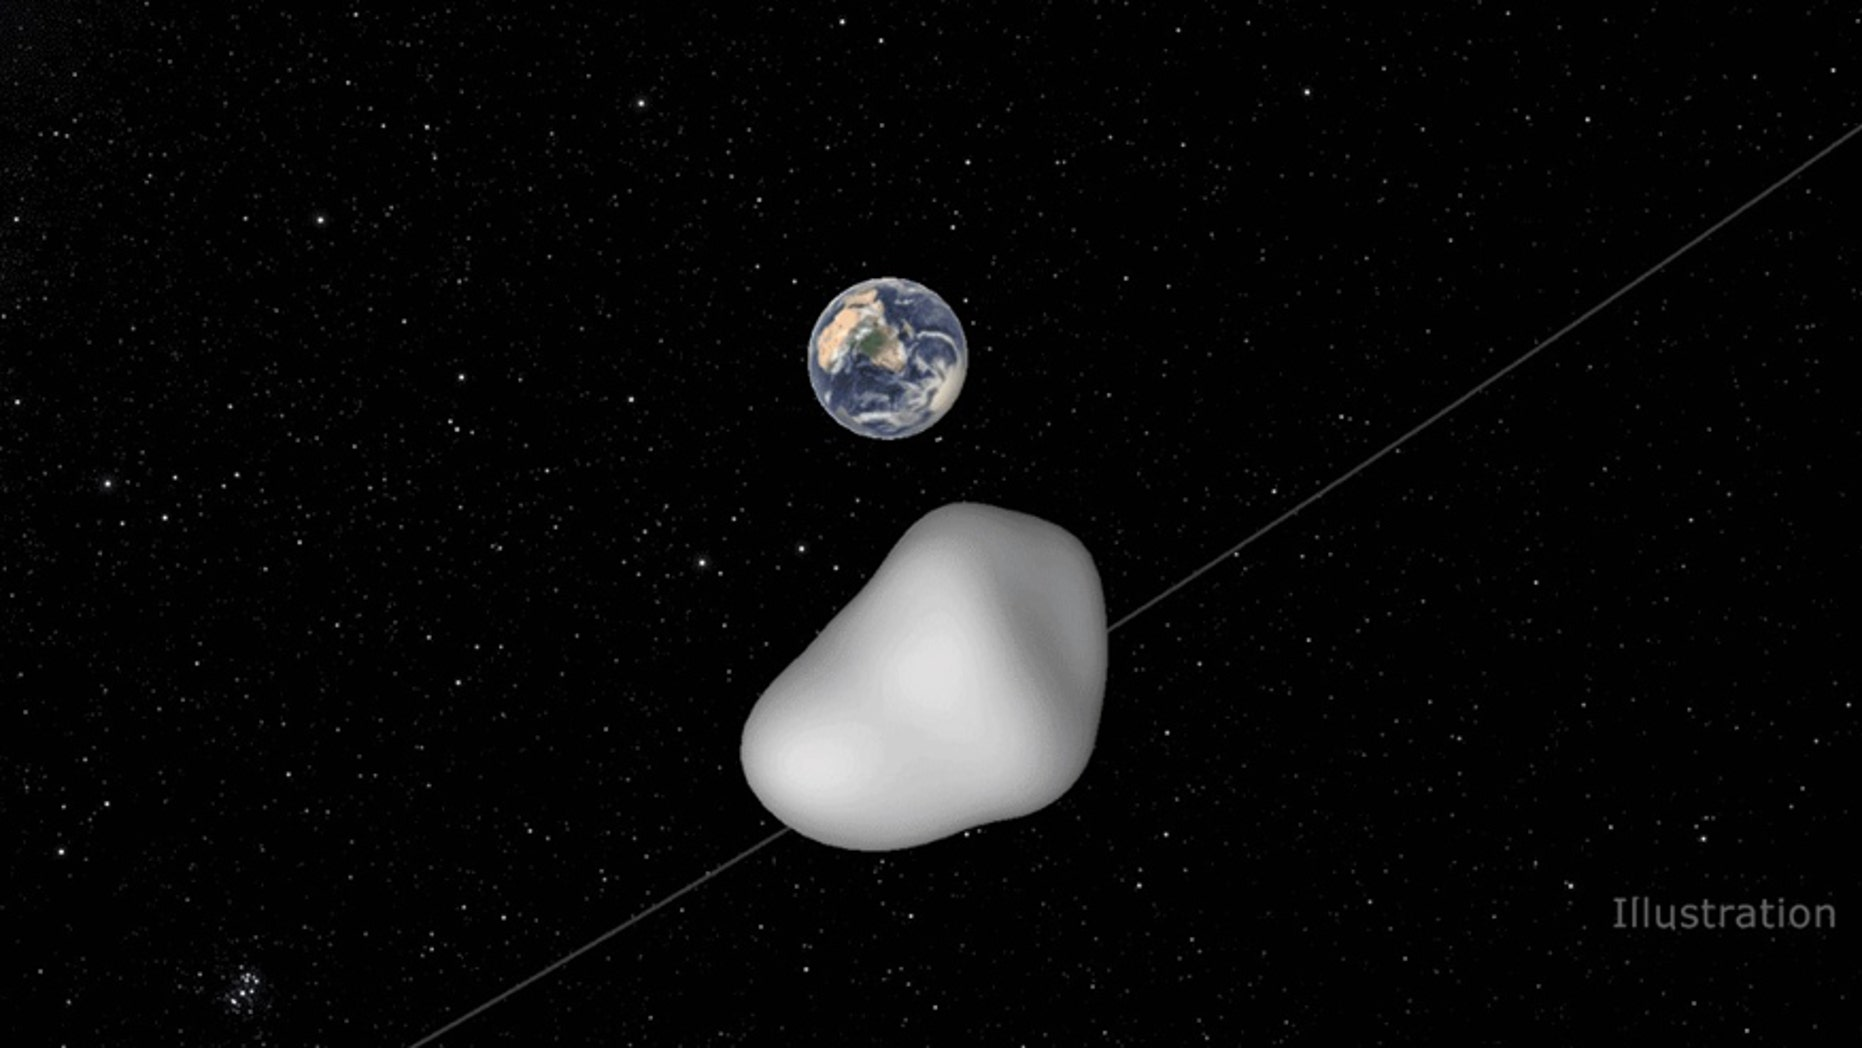 This illustration depicts the flyby of small asteroid 2012 TC4 as it passes under Earth. On Oct. 12 EDT (Oct. 11 PDT), 2012 TC4 will safely pass by Earth at a distance of approximately 26,000 miles. (Image credit: NASA/JPL-Caltech)